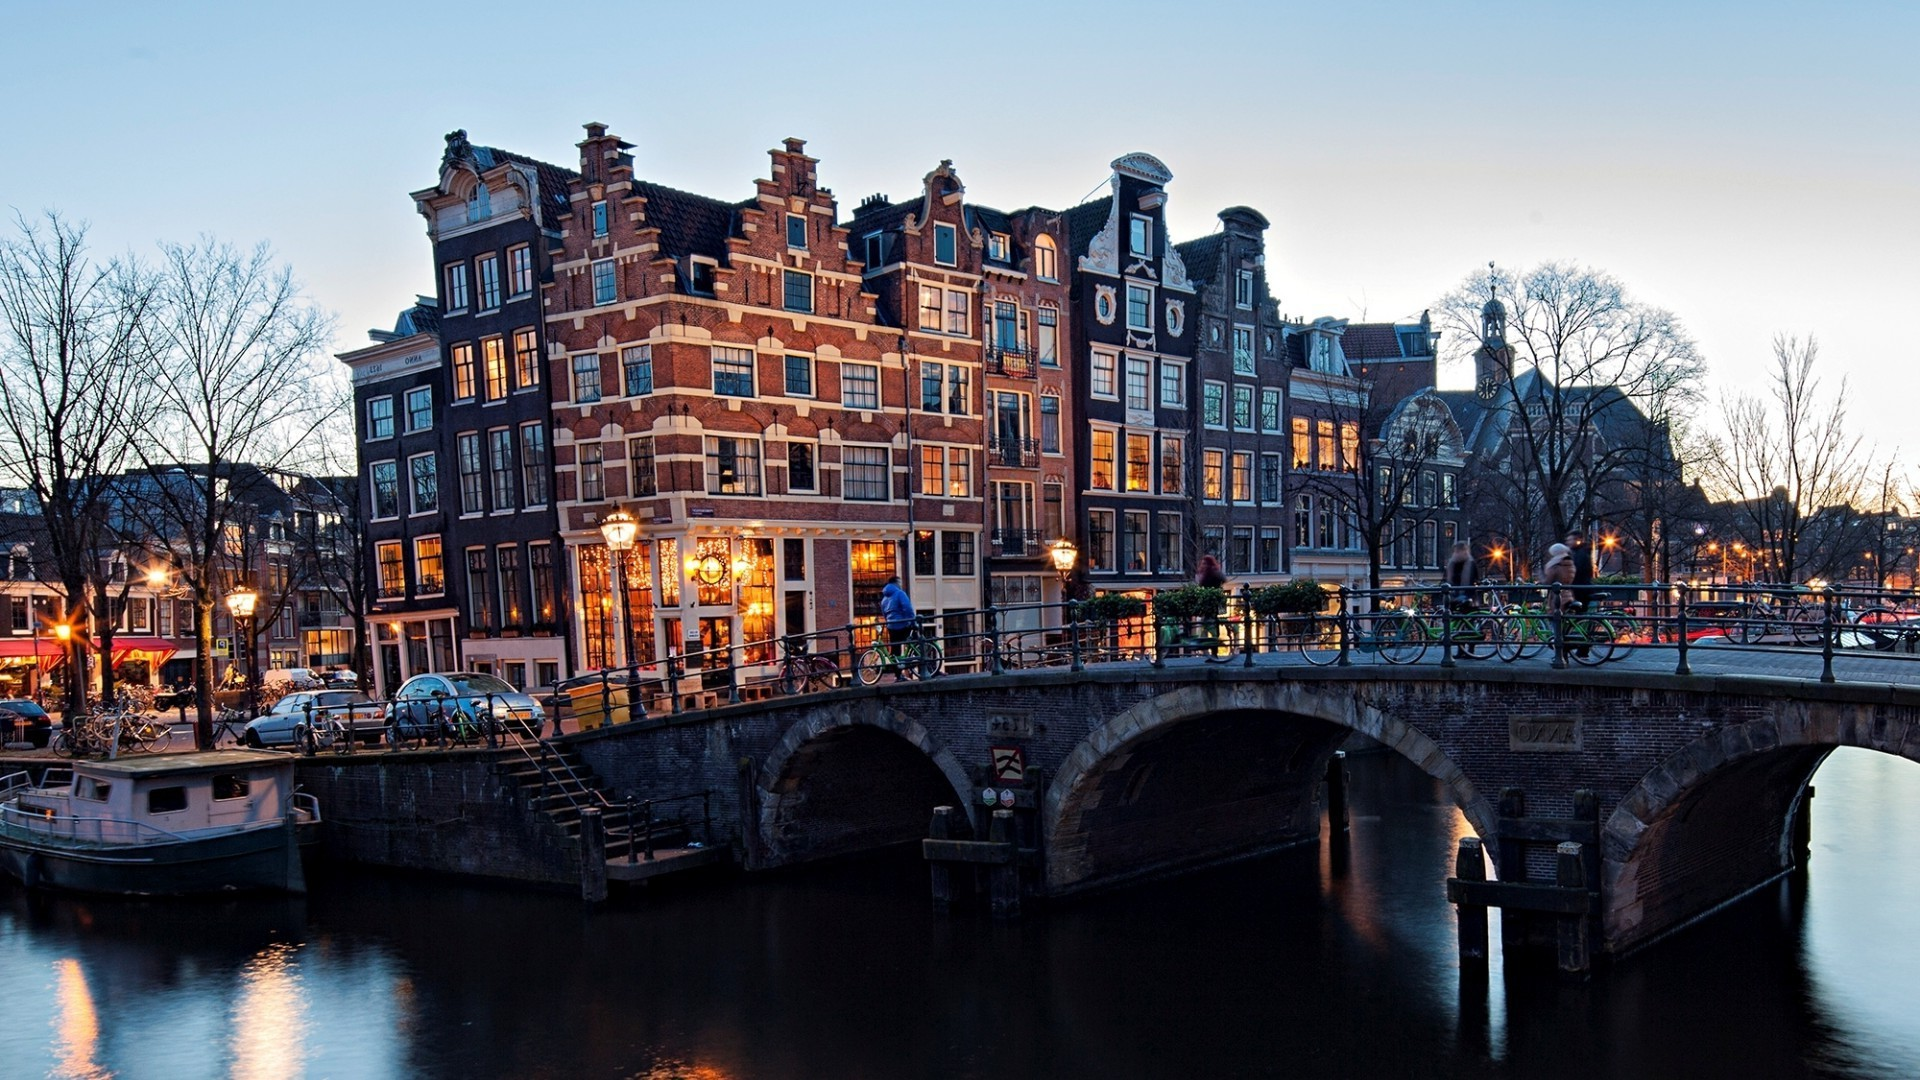 Amsterdam wallpapers images photos pictures backgrounds - Wallpaper photos ...